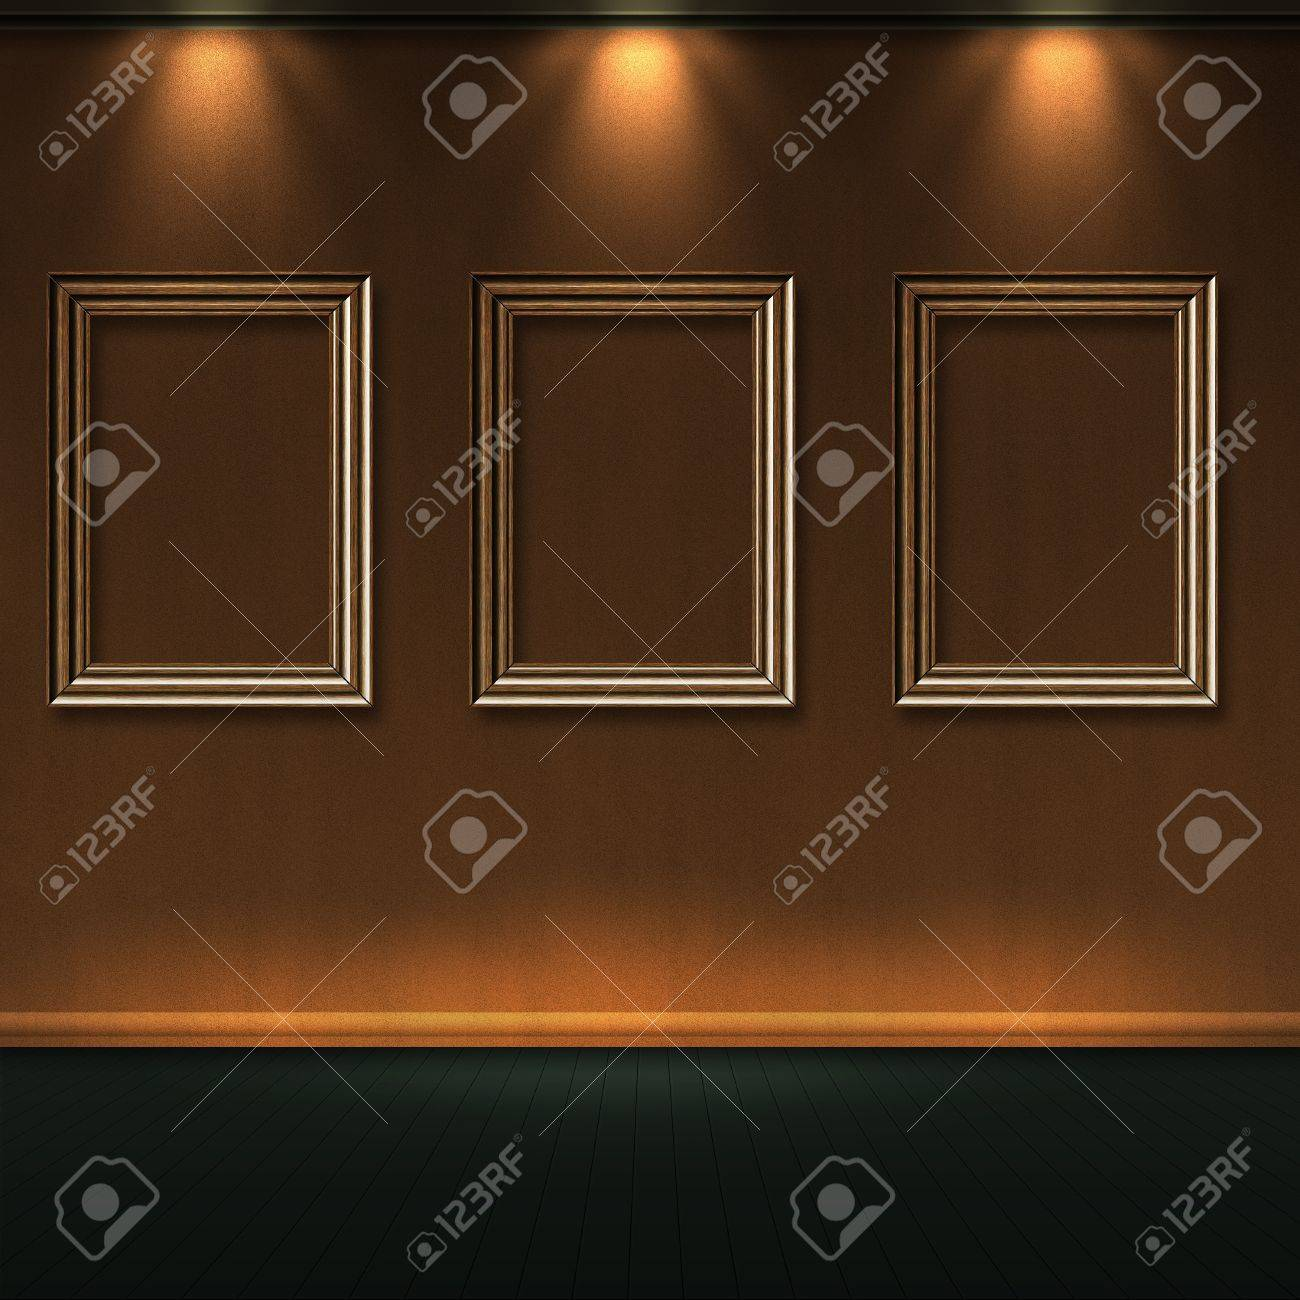 Empty Wooden Frames In Room With Lights On Wall. Stock Photo ...